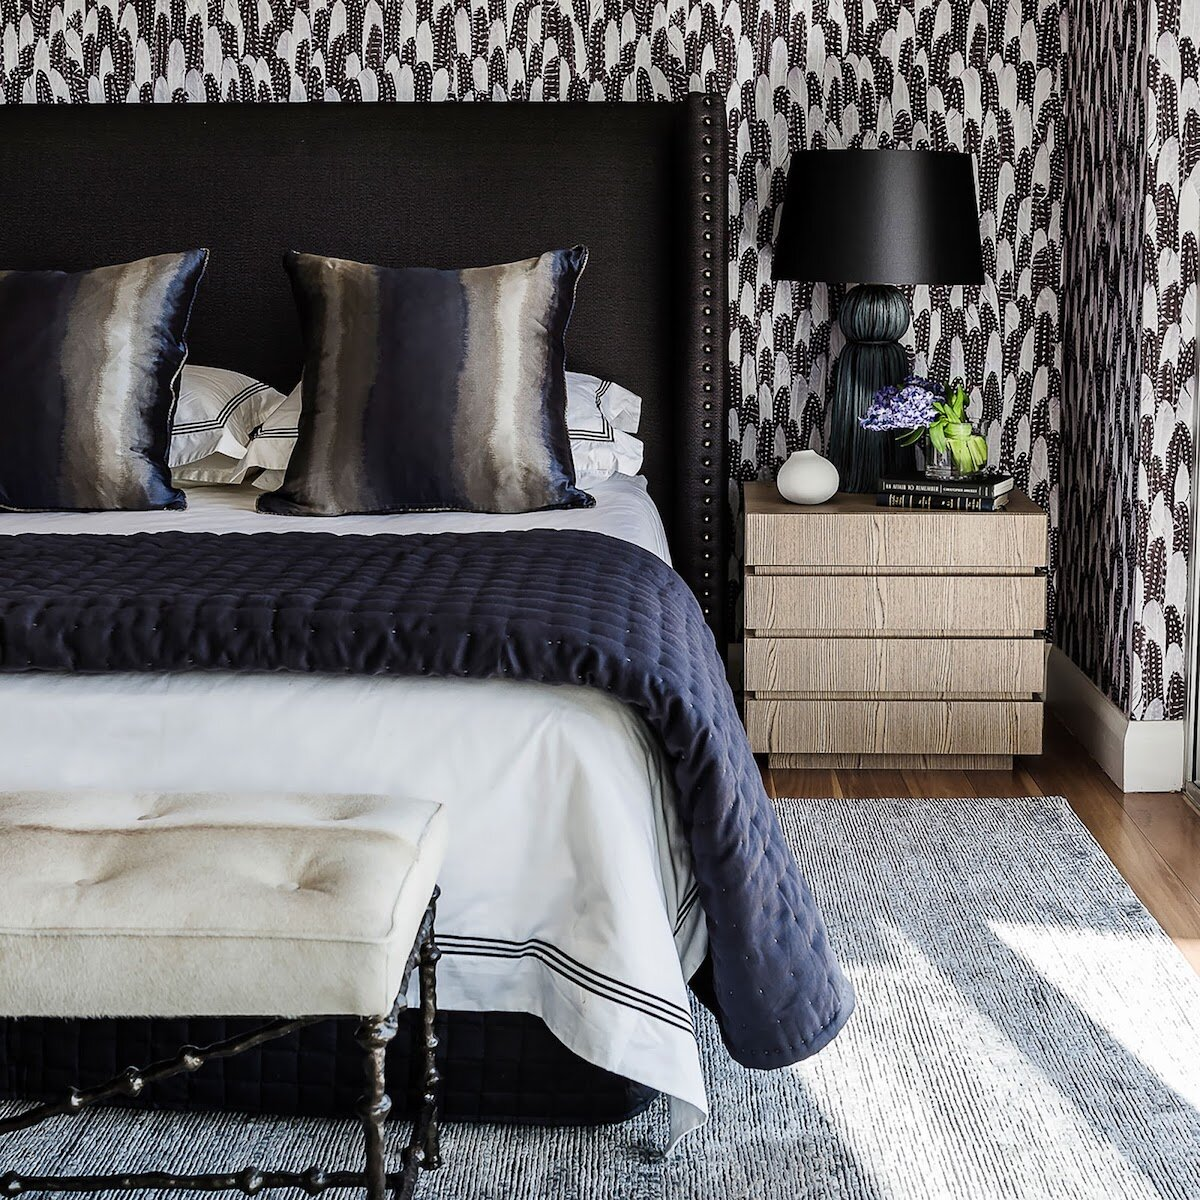 5 Diy Steps To Creating Your Bedroom Haven The Renovate Avenue